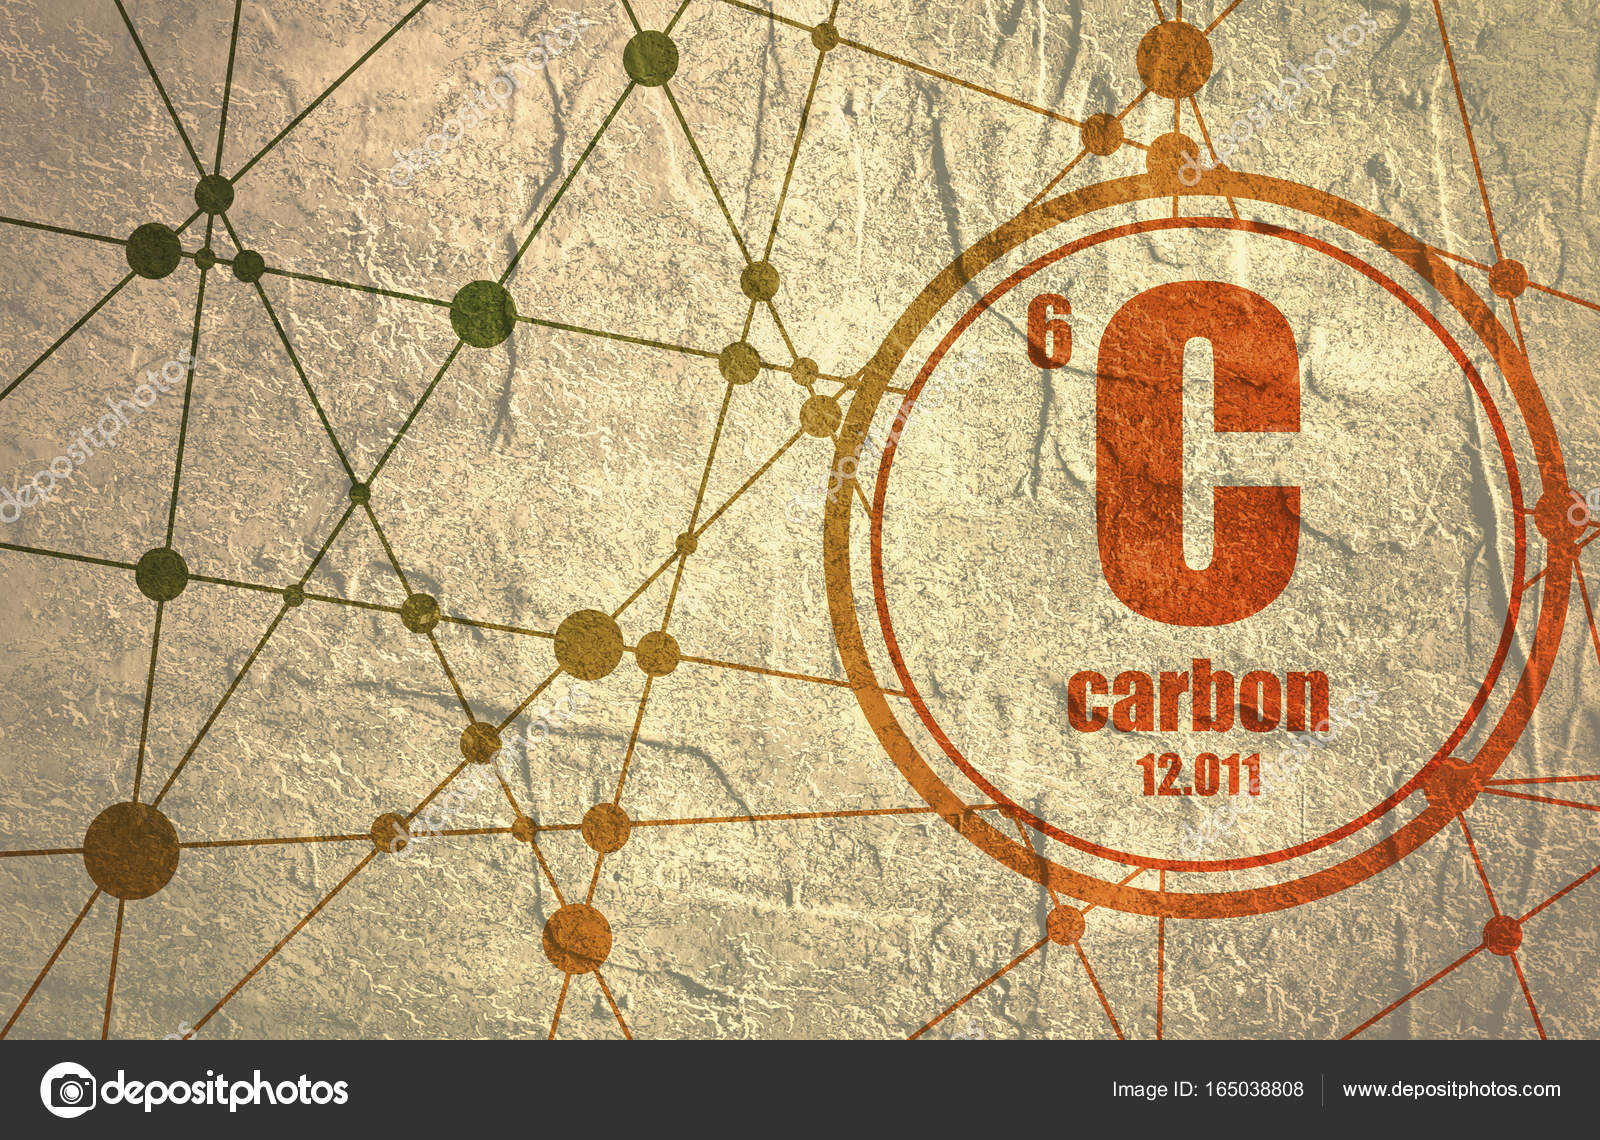 Carbon chemical element stock photo jegasra 165038808 carbon chemical element sign with atomic number and atomic weight chemical element of periodic table molecule and communication background urtaz Image collections